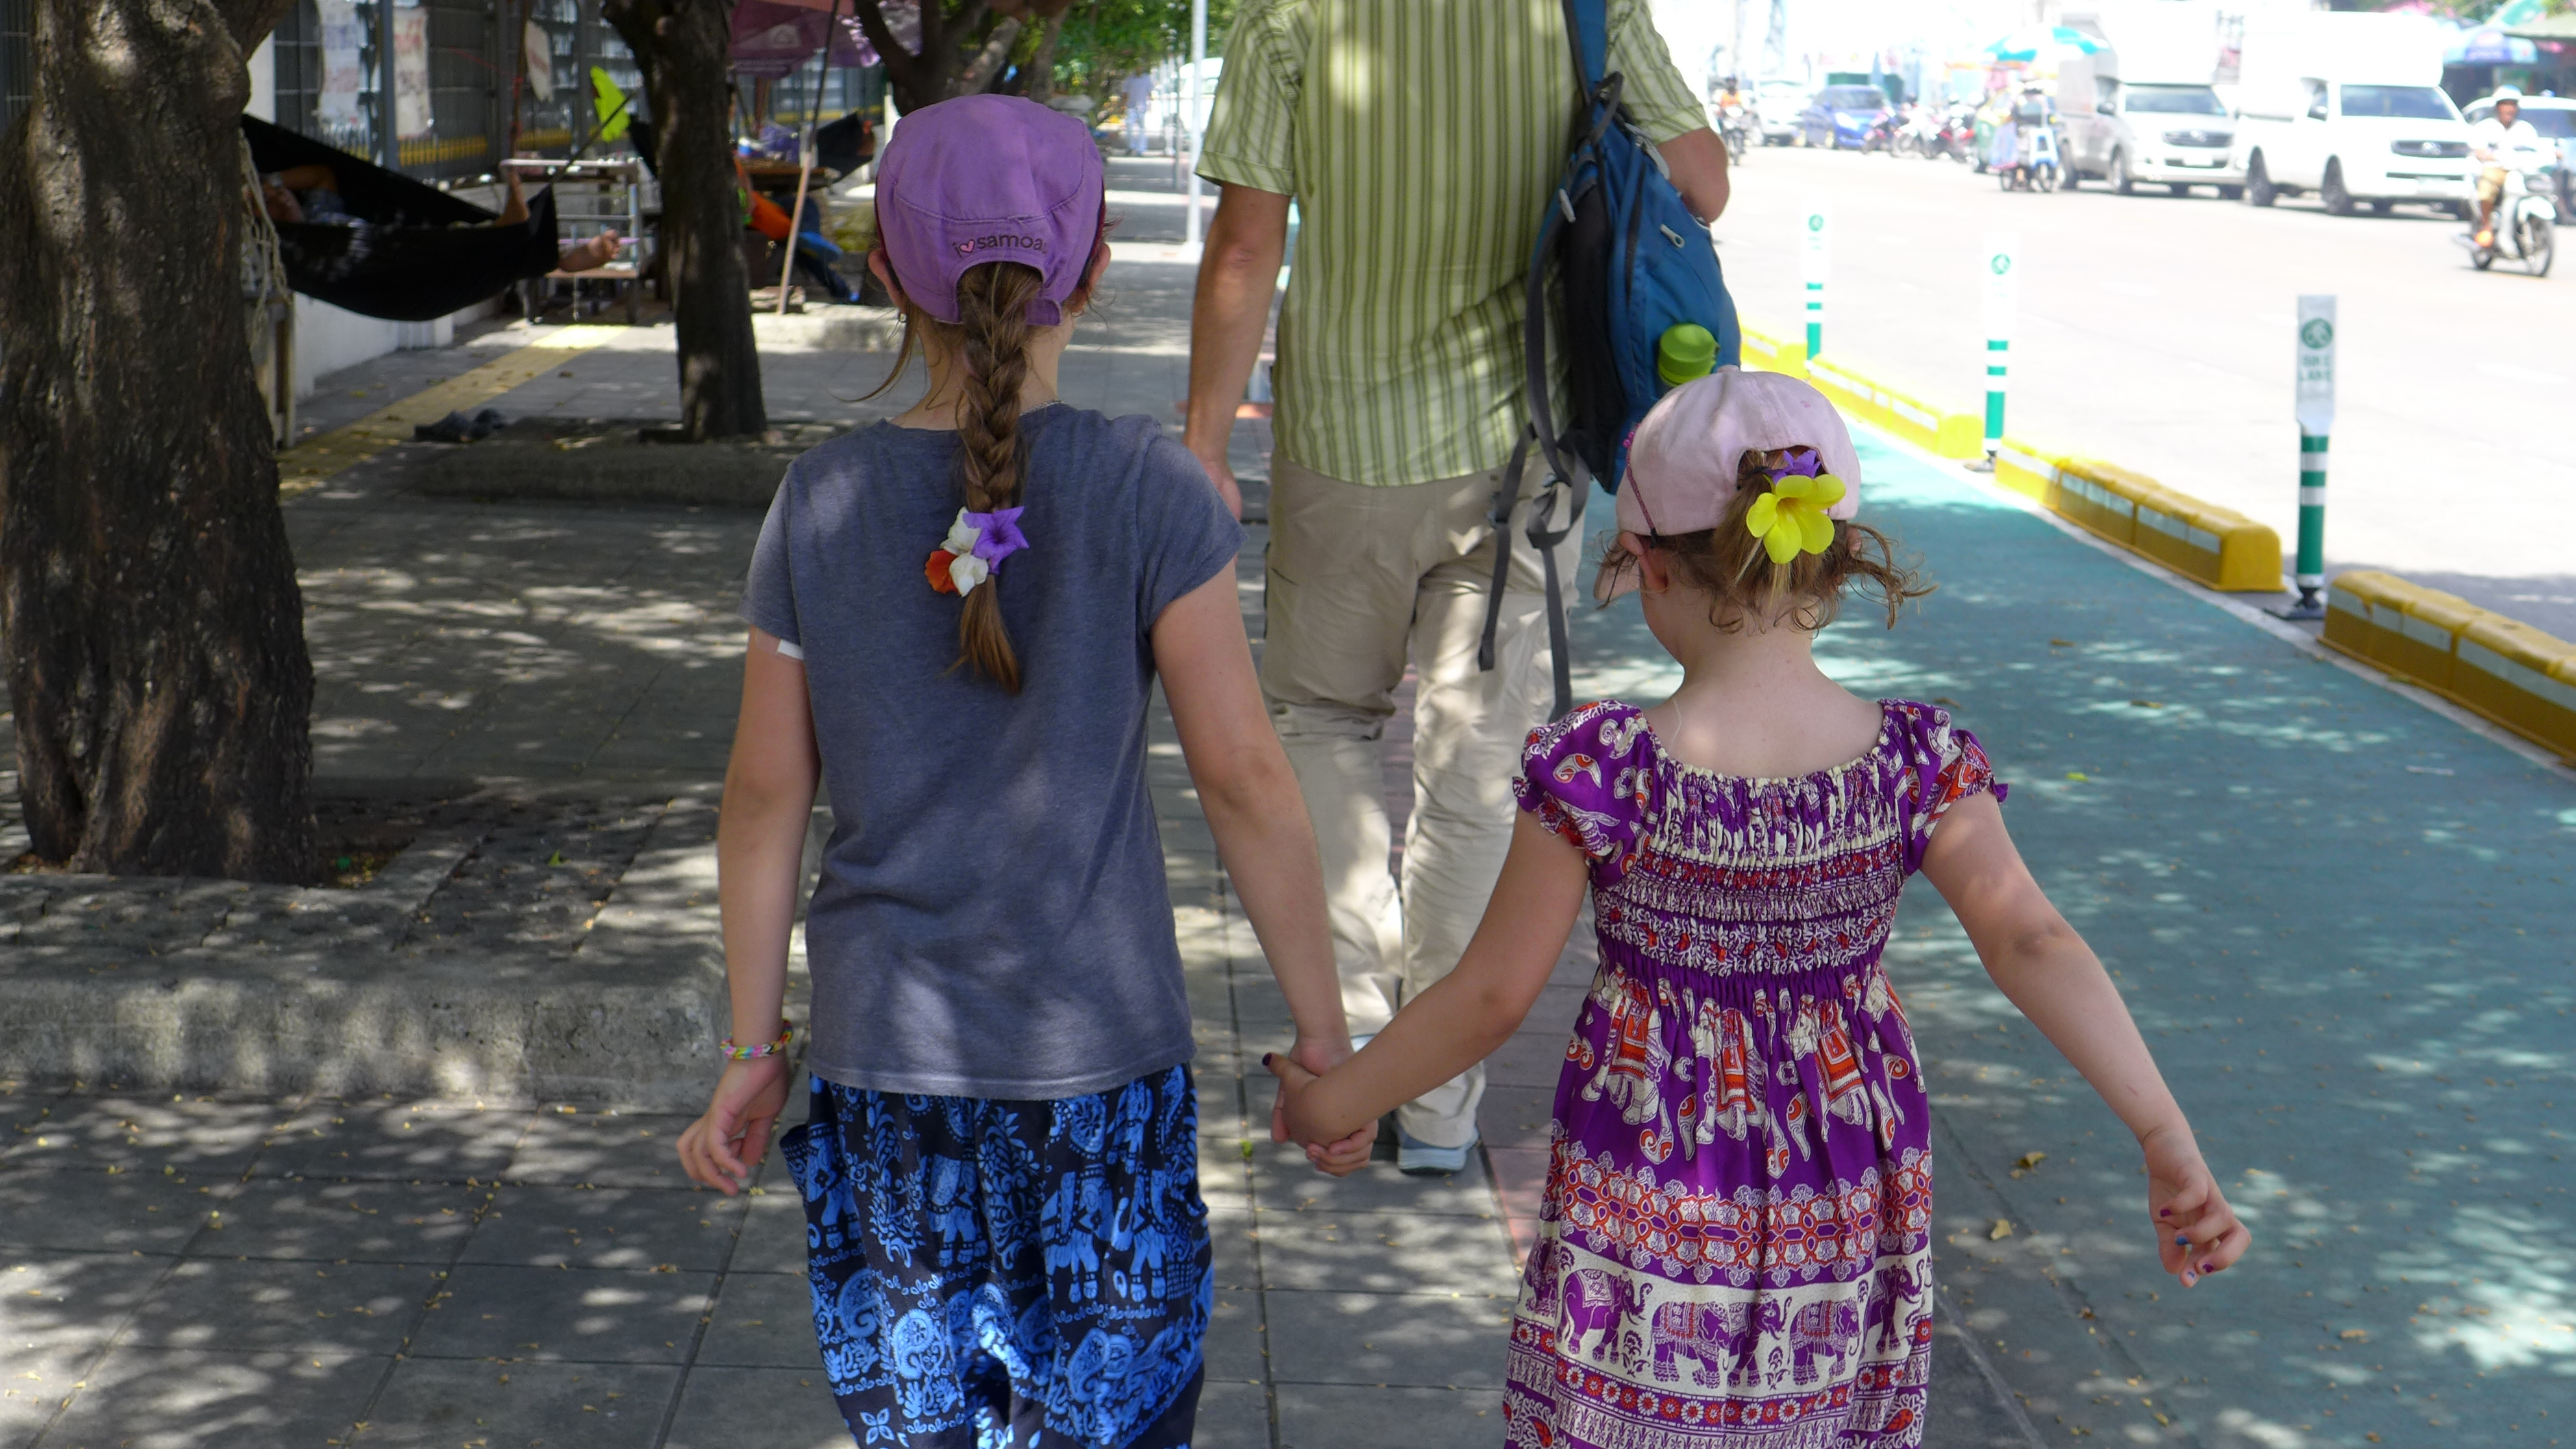 Quinn and Mackenzie hold hands with flowers in their hair walking behind Jacob